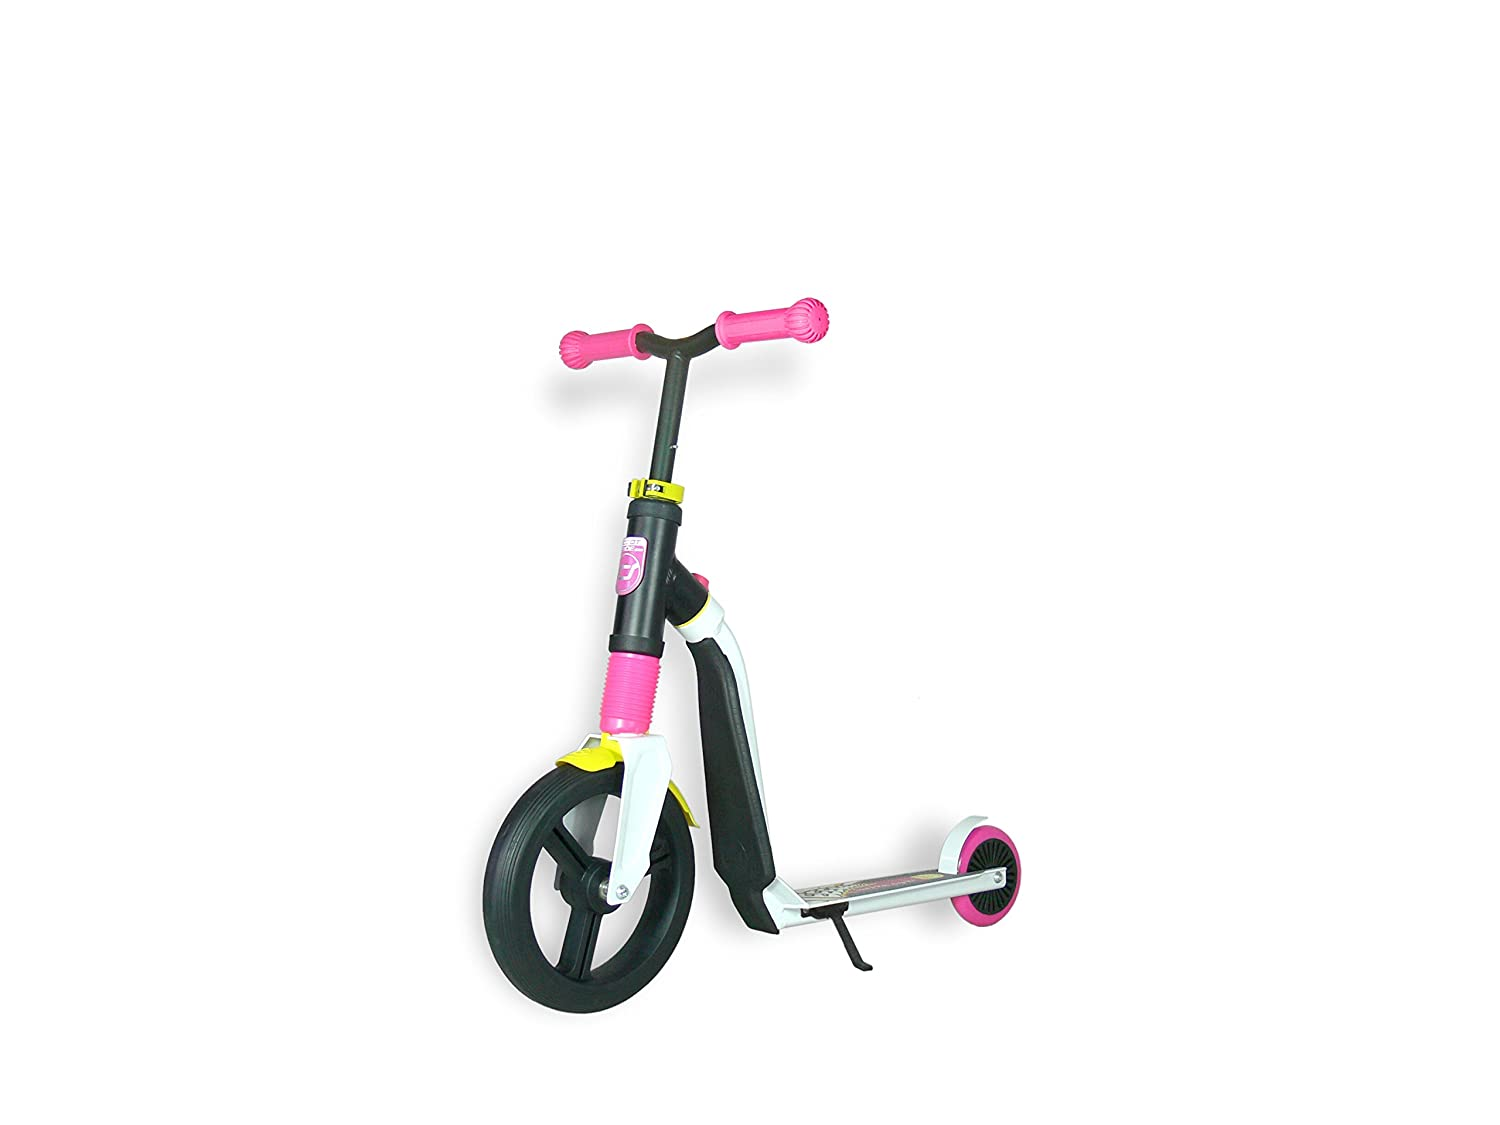 Scoot & Ride Junior Rosa (2en1 Patinete + Bicicleta de ...